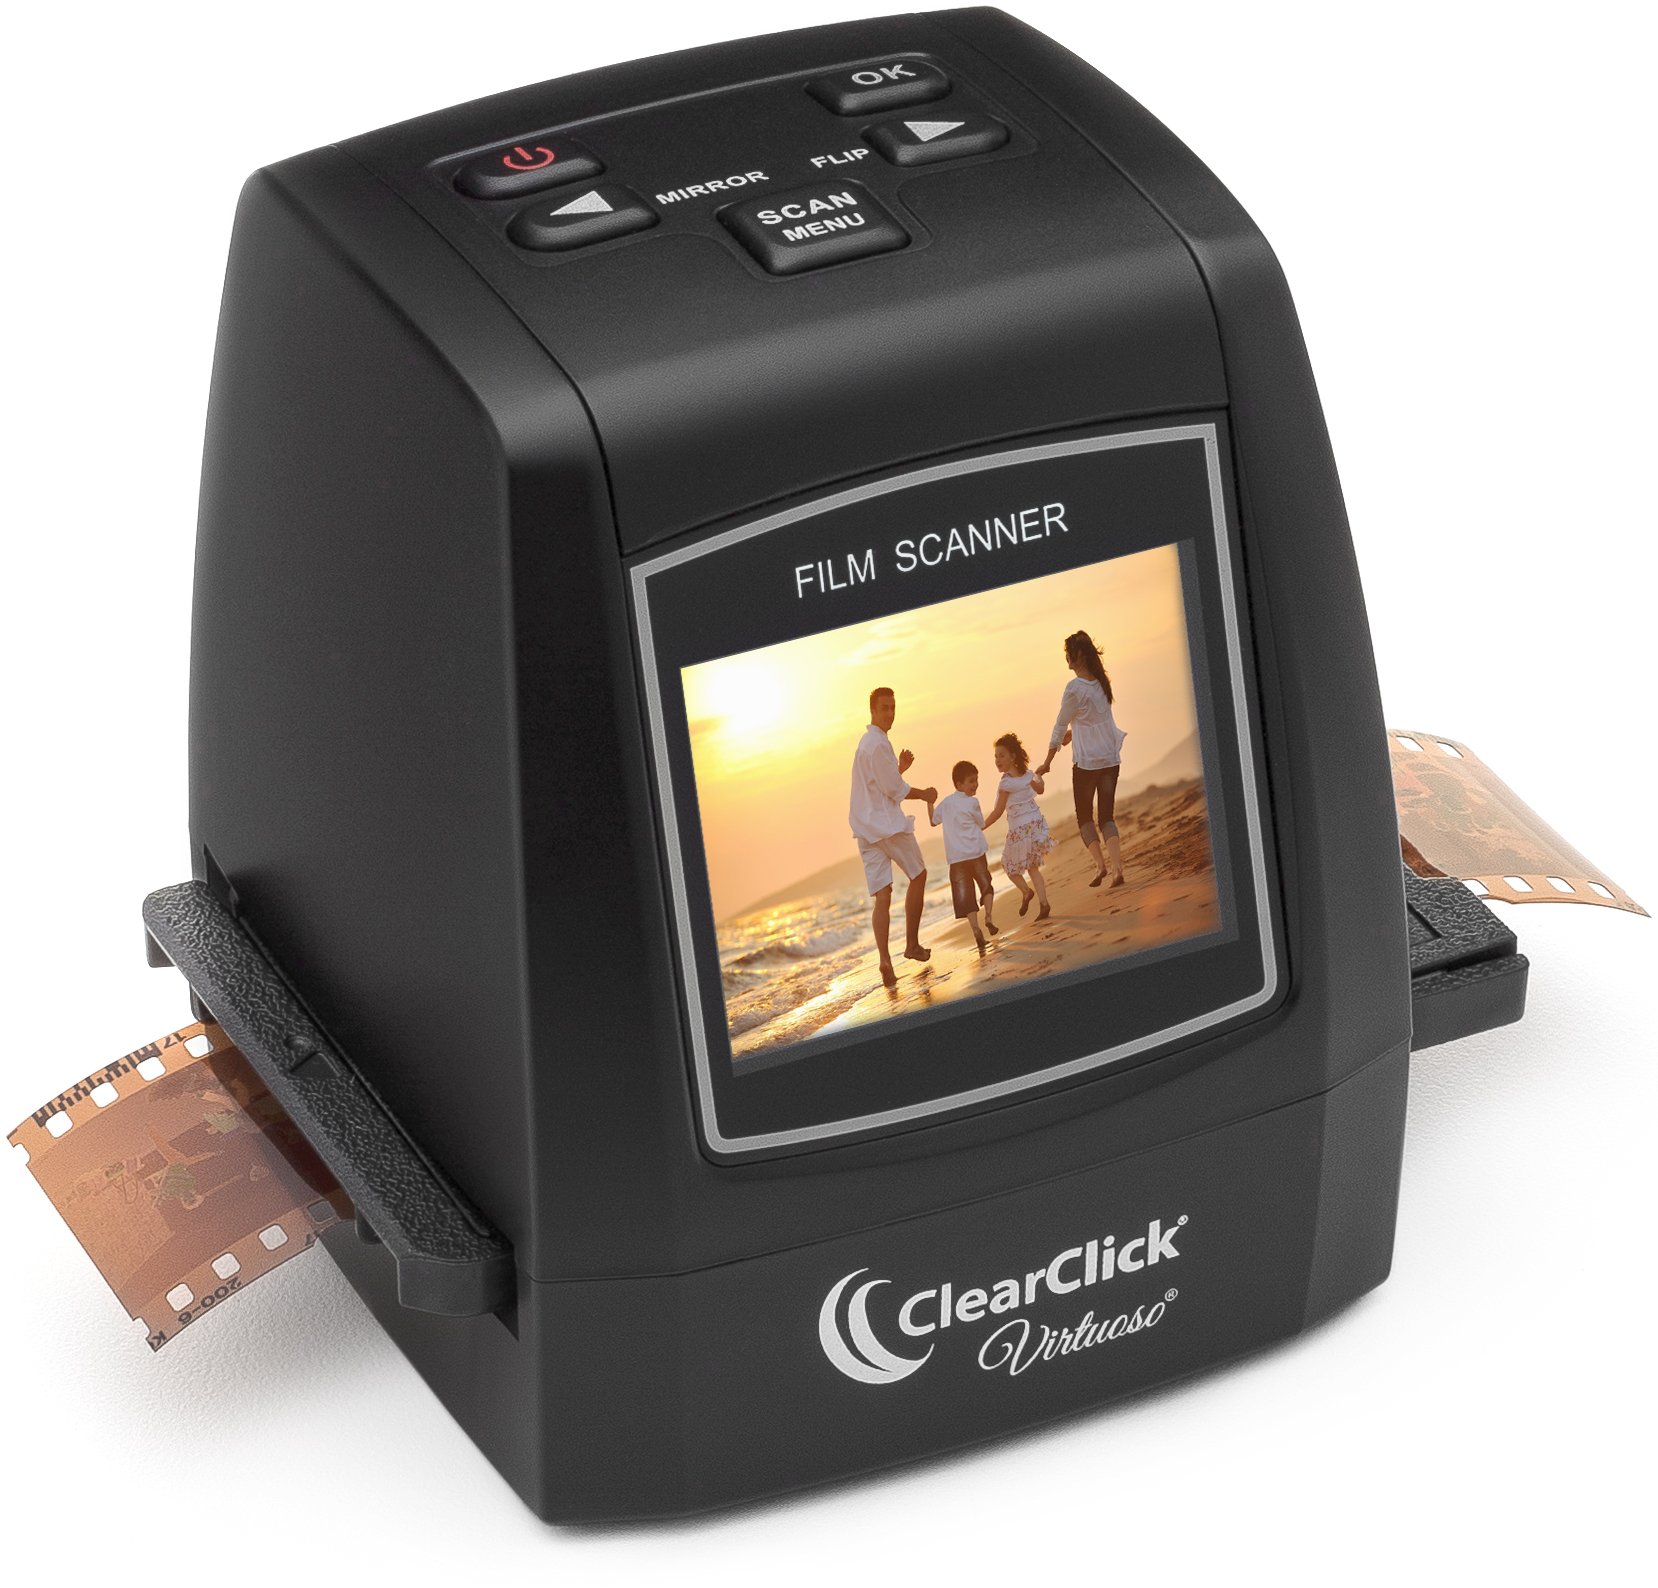 ClearClick 22MP Virtuoso Film & Slide Scanner with PhotoP...